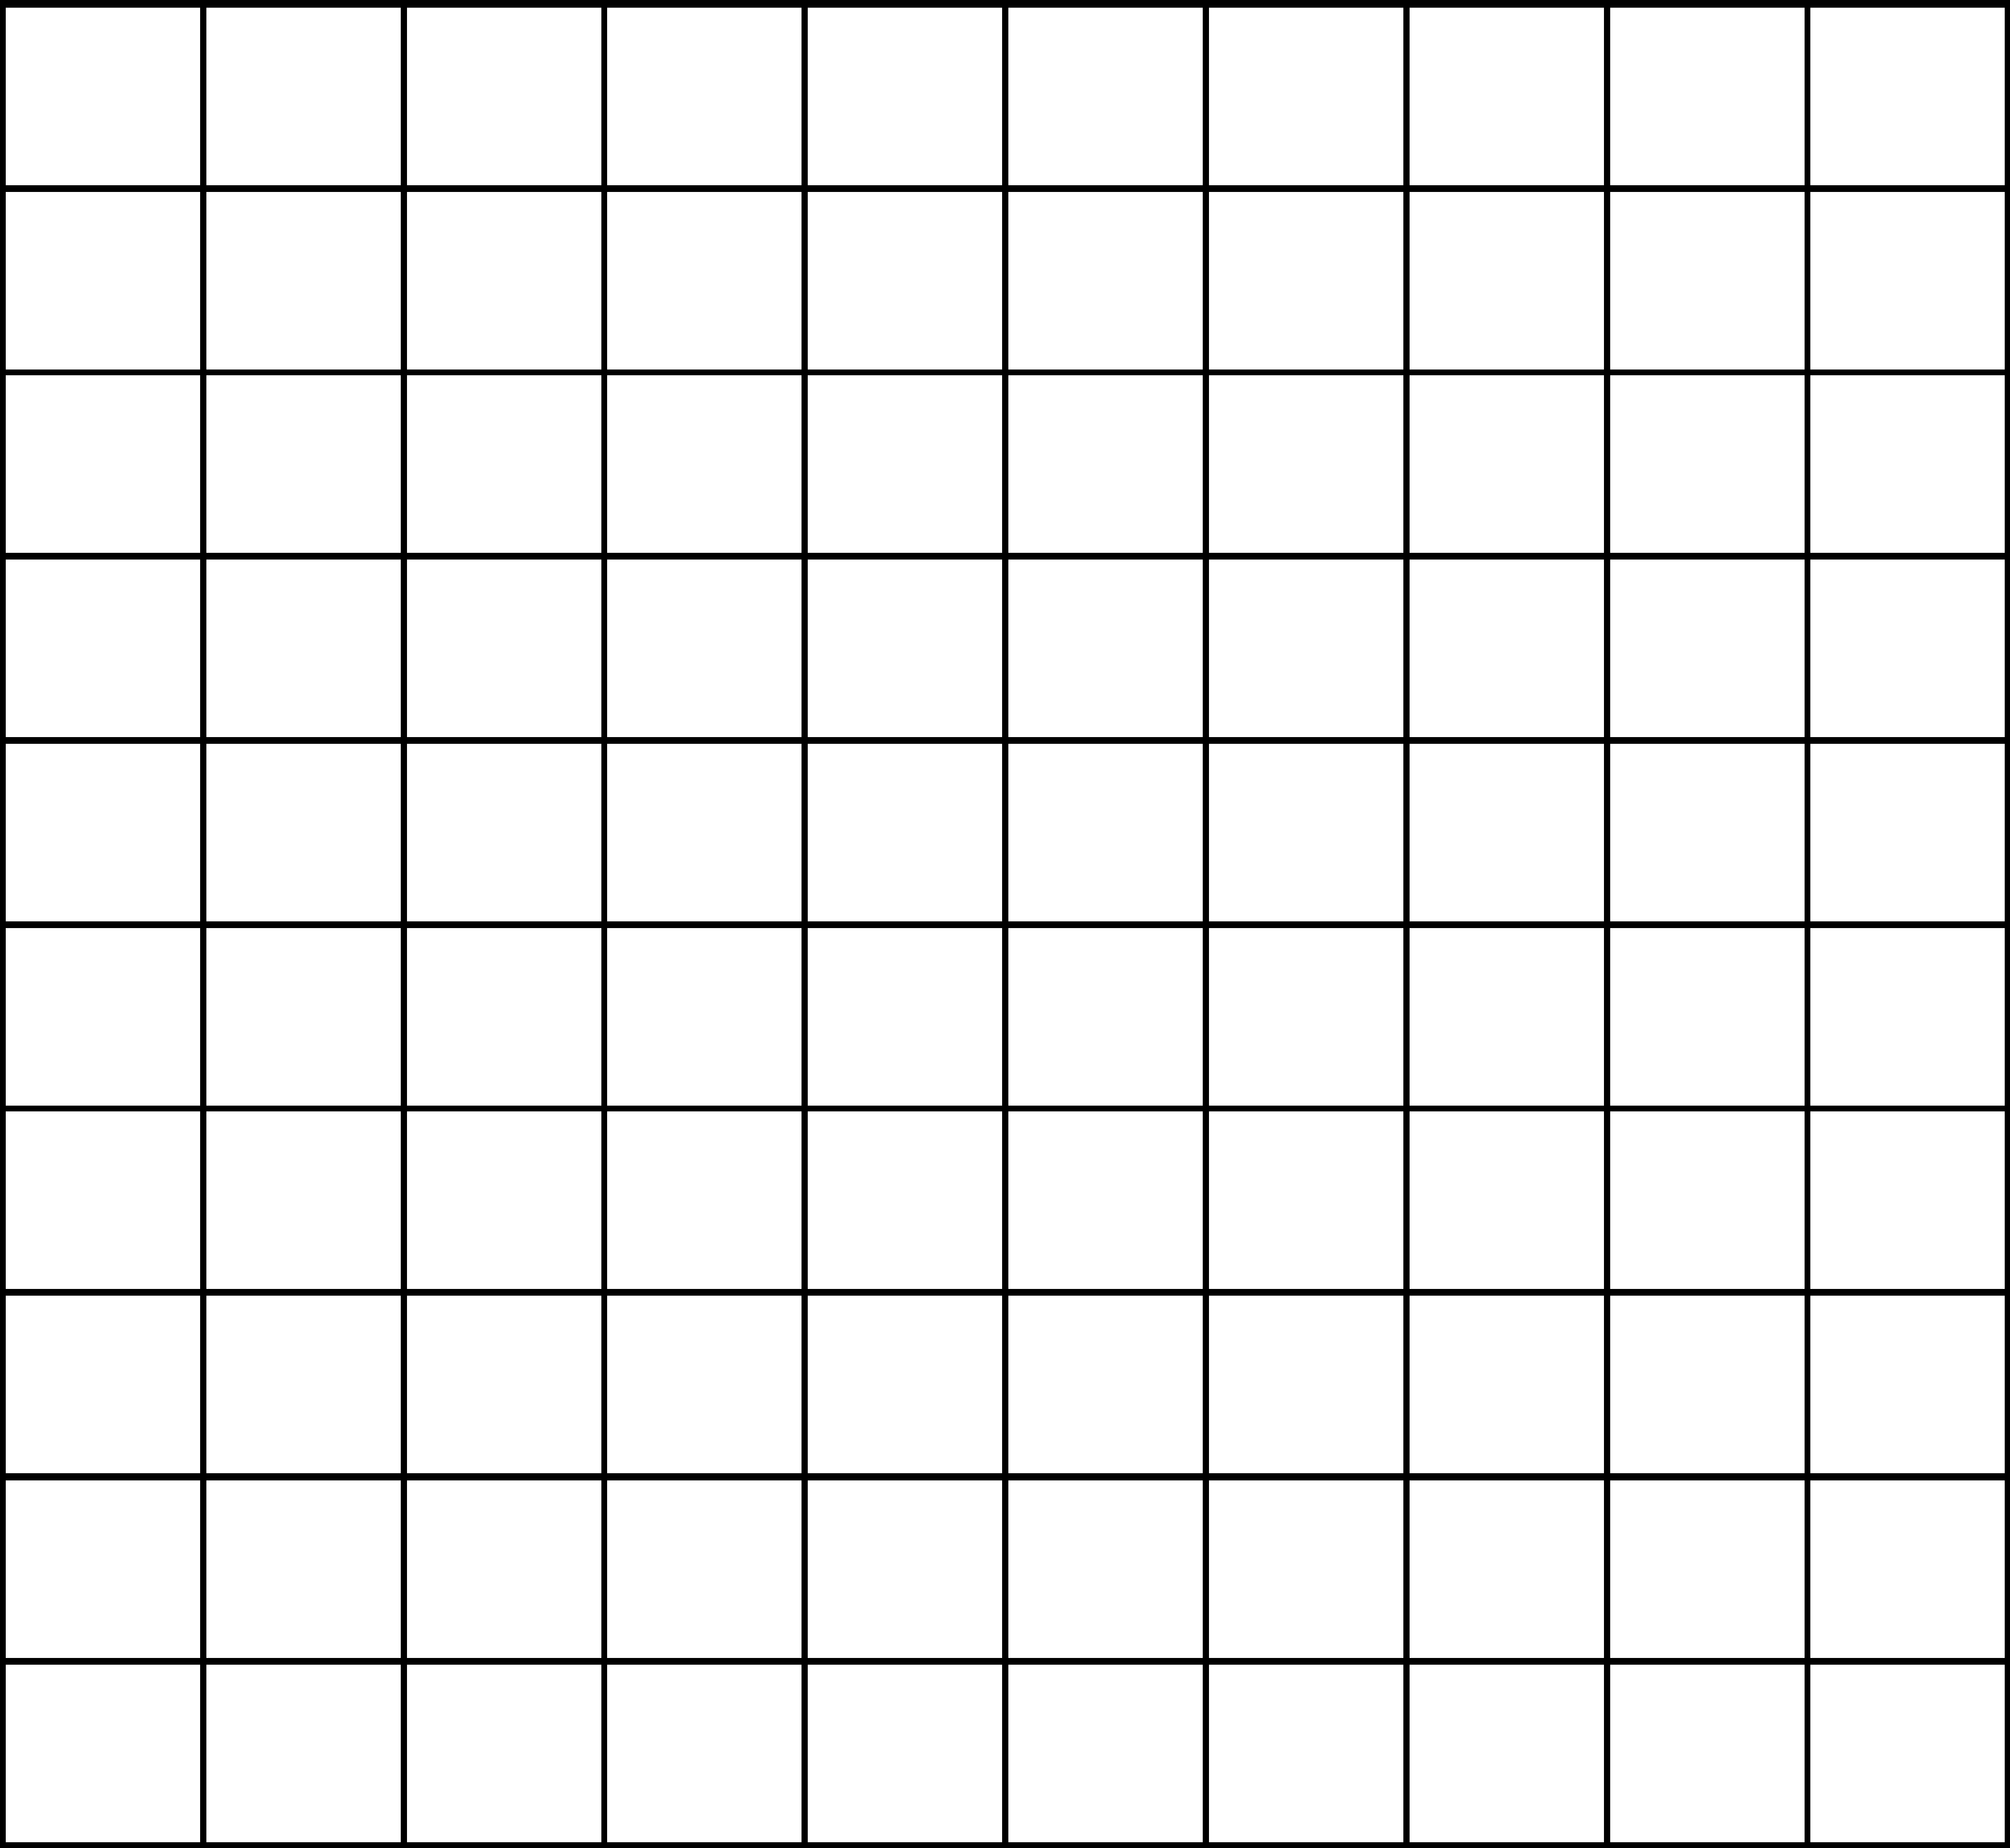 Blank 100 Squares by haxor478 on DeviantArt